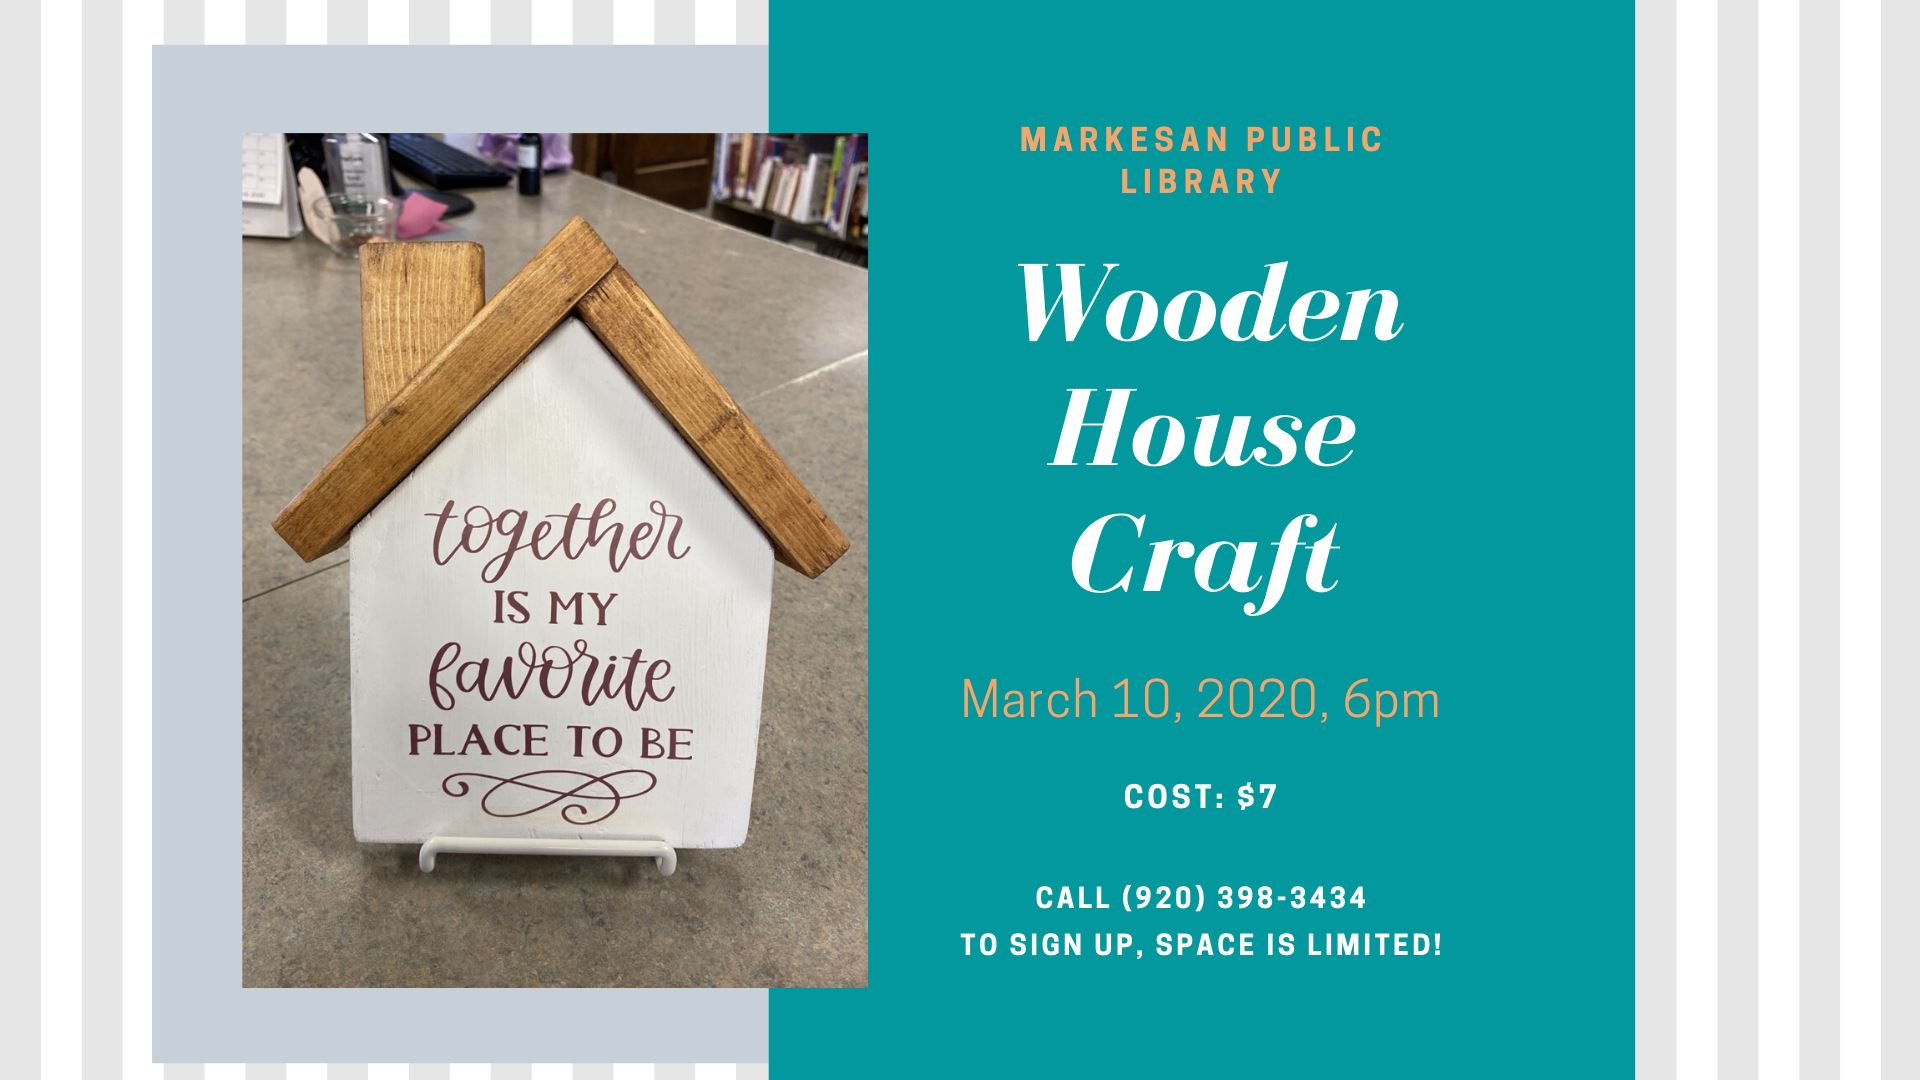 Wooden House Craft, Tuesday, March 10, 6pm